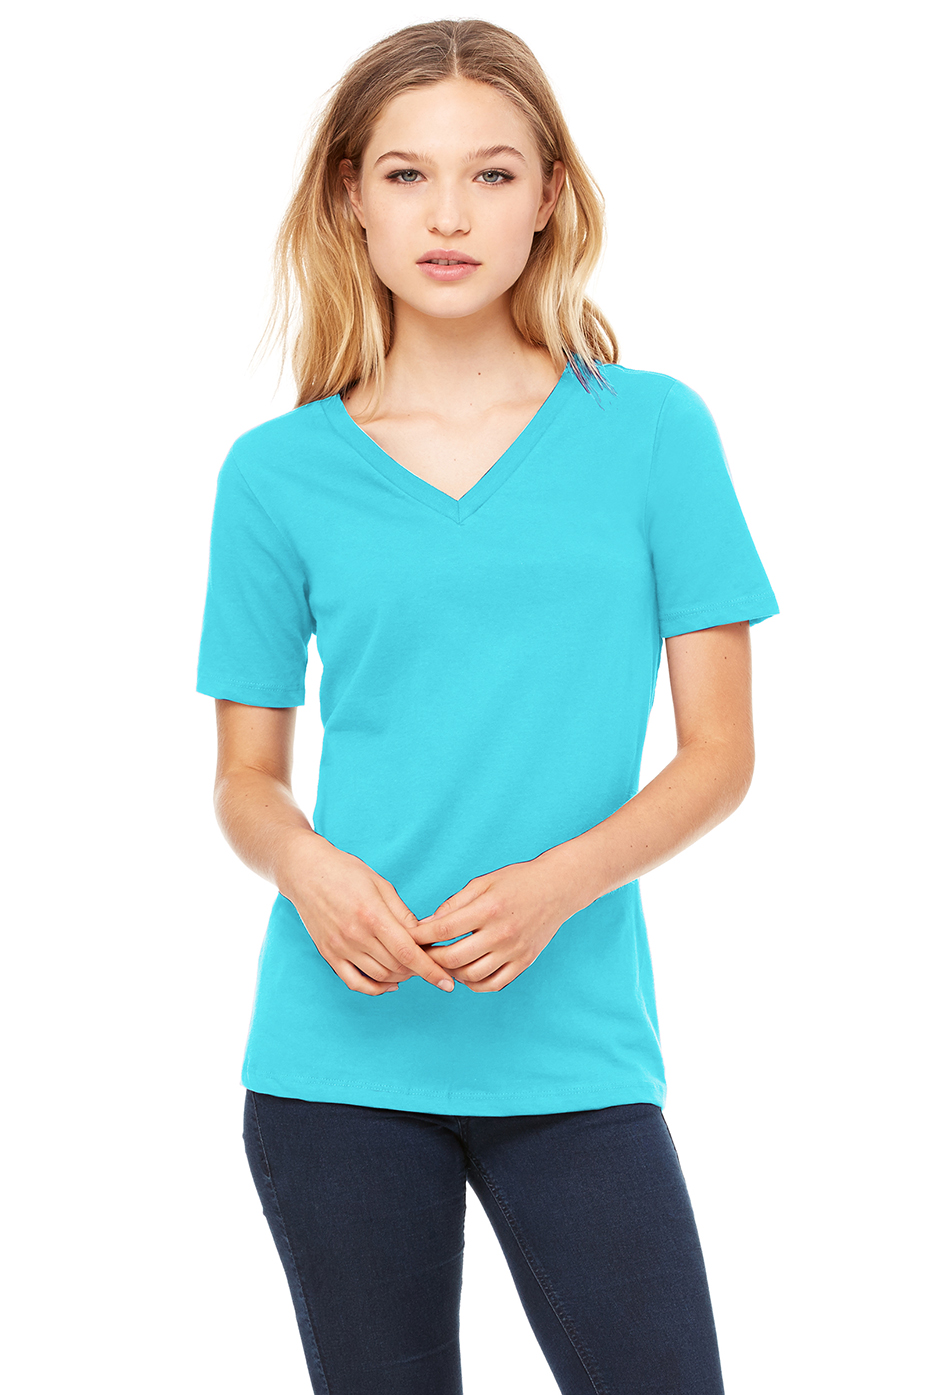 For Women Long Hairstyles And: Women's Relaxed Jersey Short Sleeve V-Neck Tee